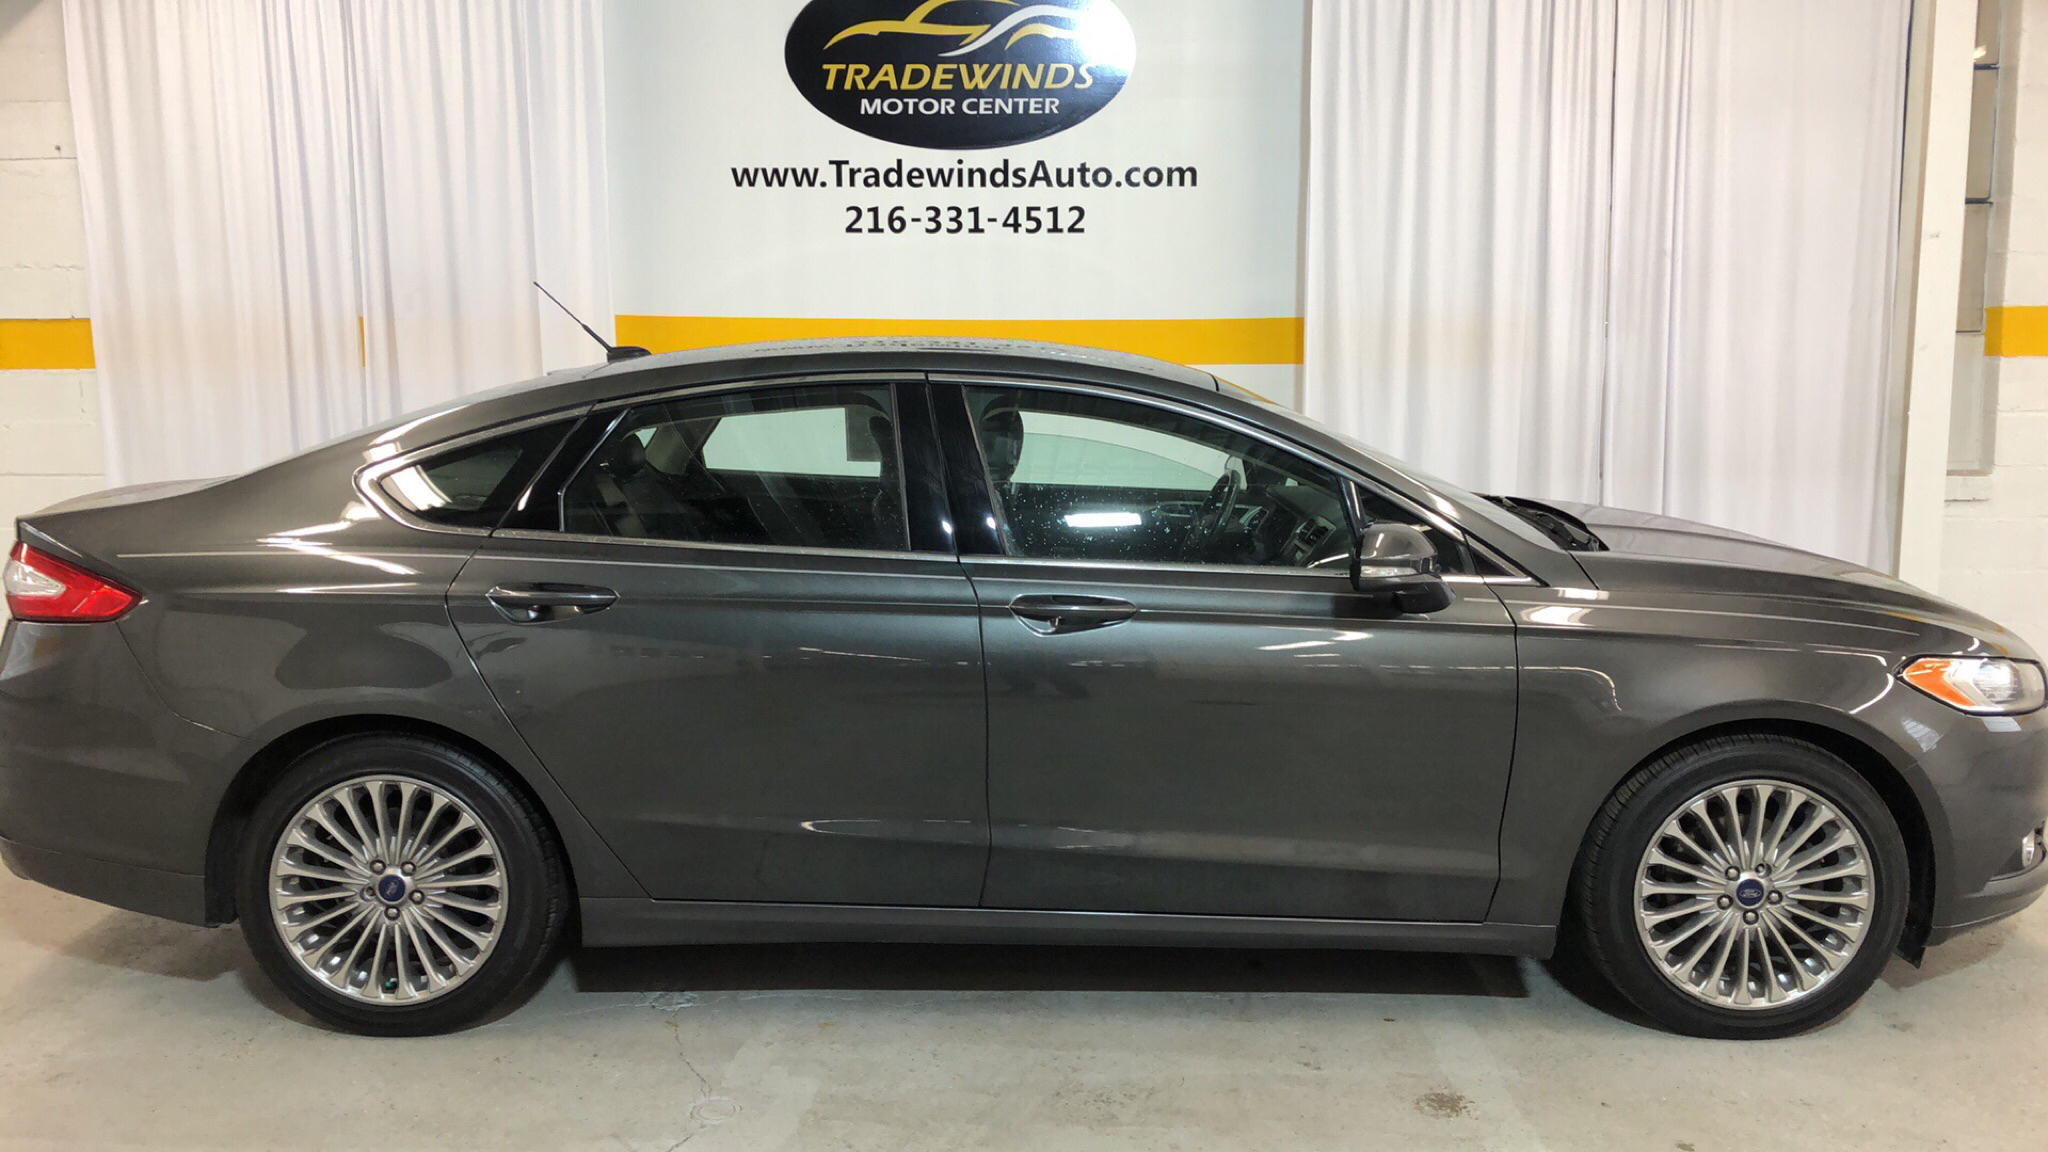 2015 FORD FUSION SE for sale at Tradewinds Motor Center